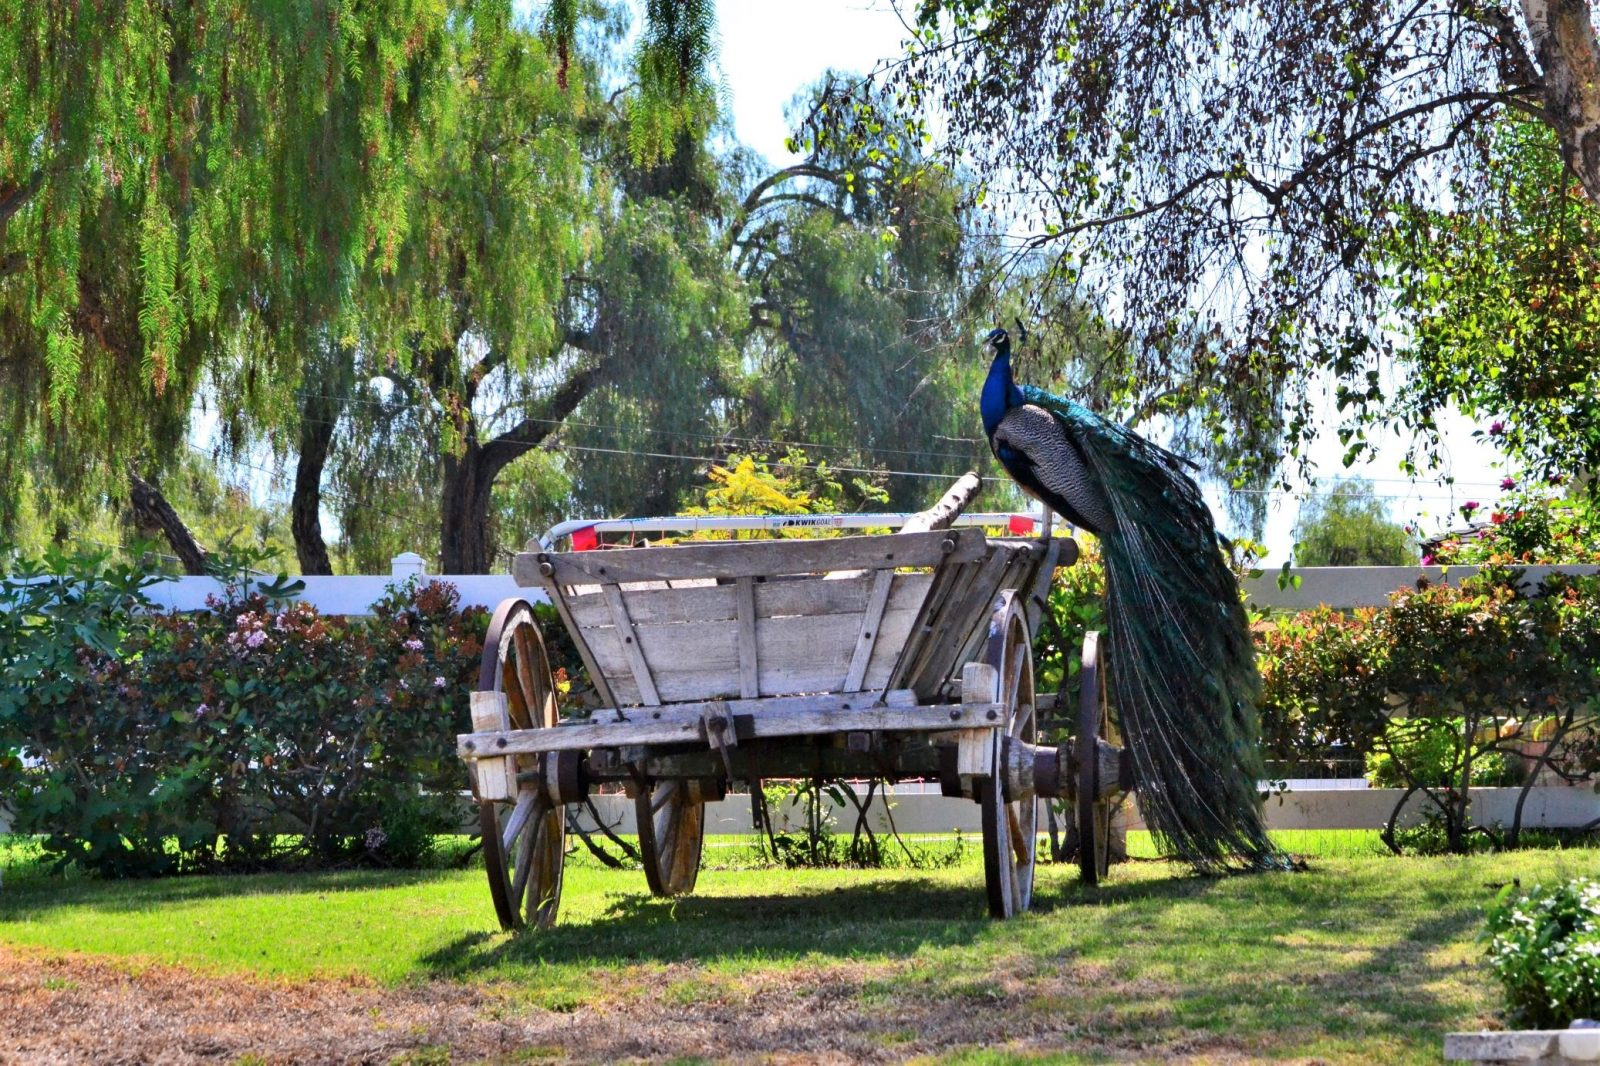 Peacock & Wagon